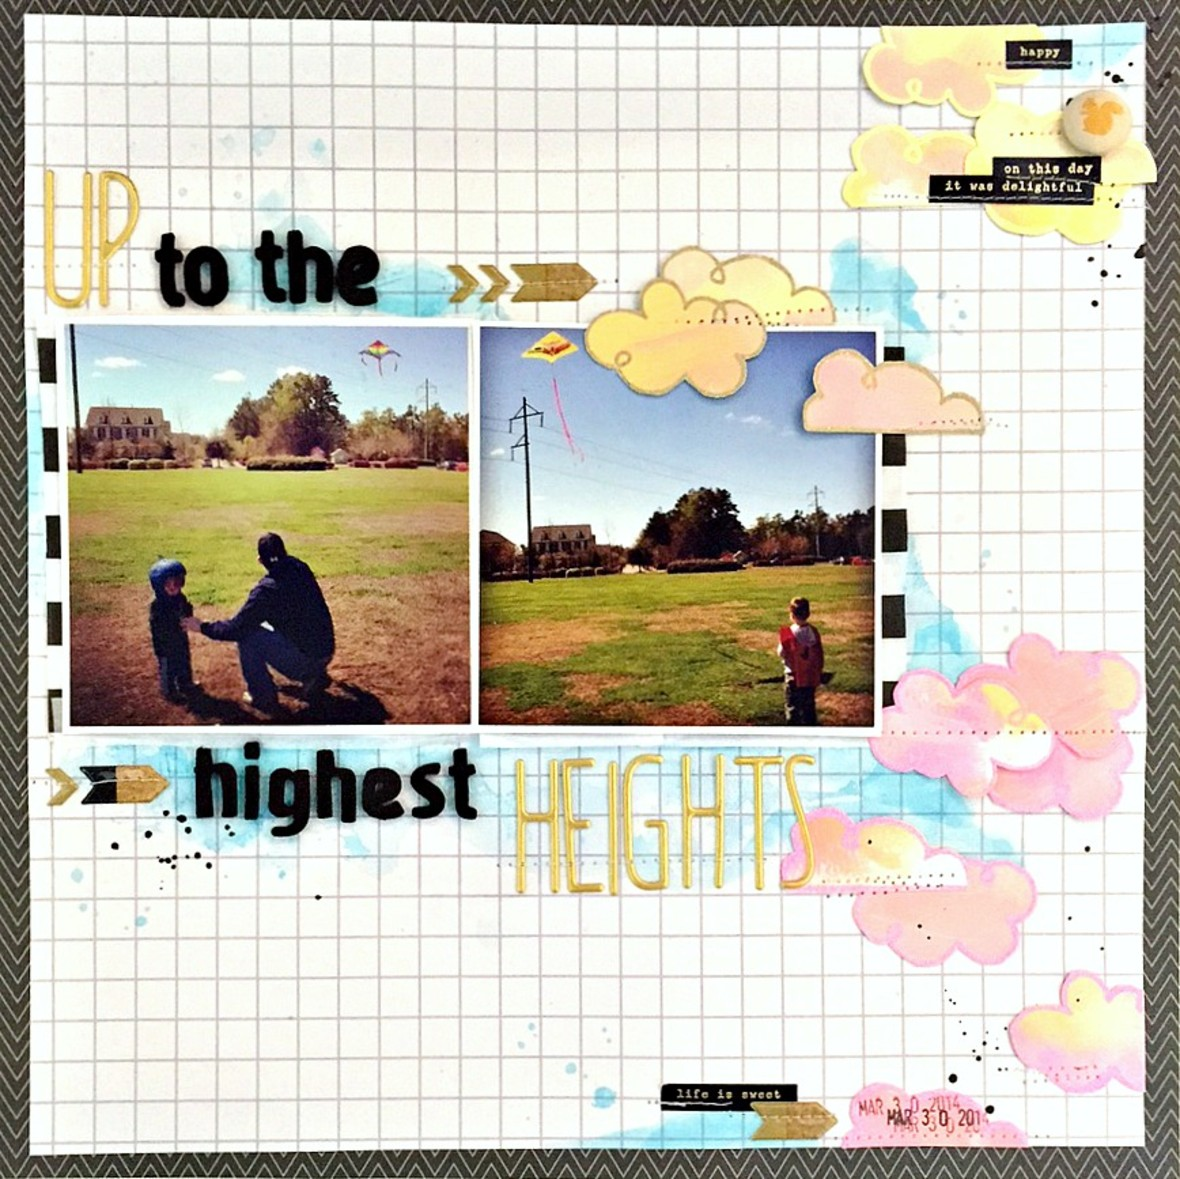 The highest heights layout   ls original